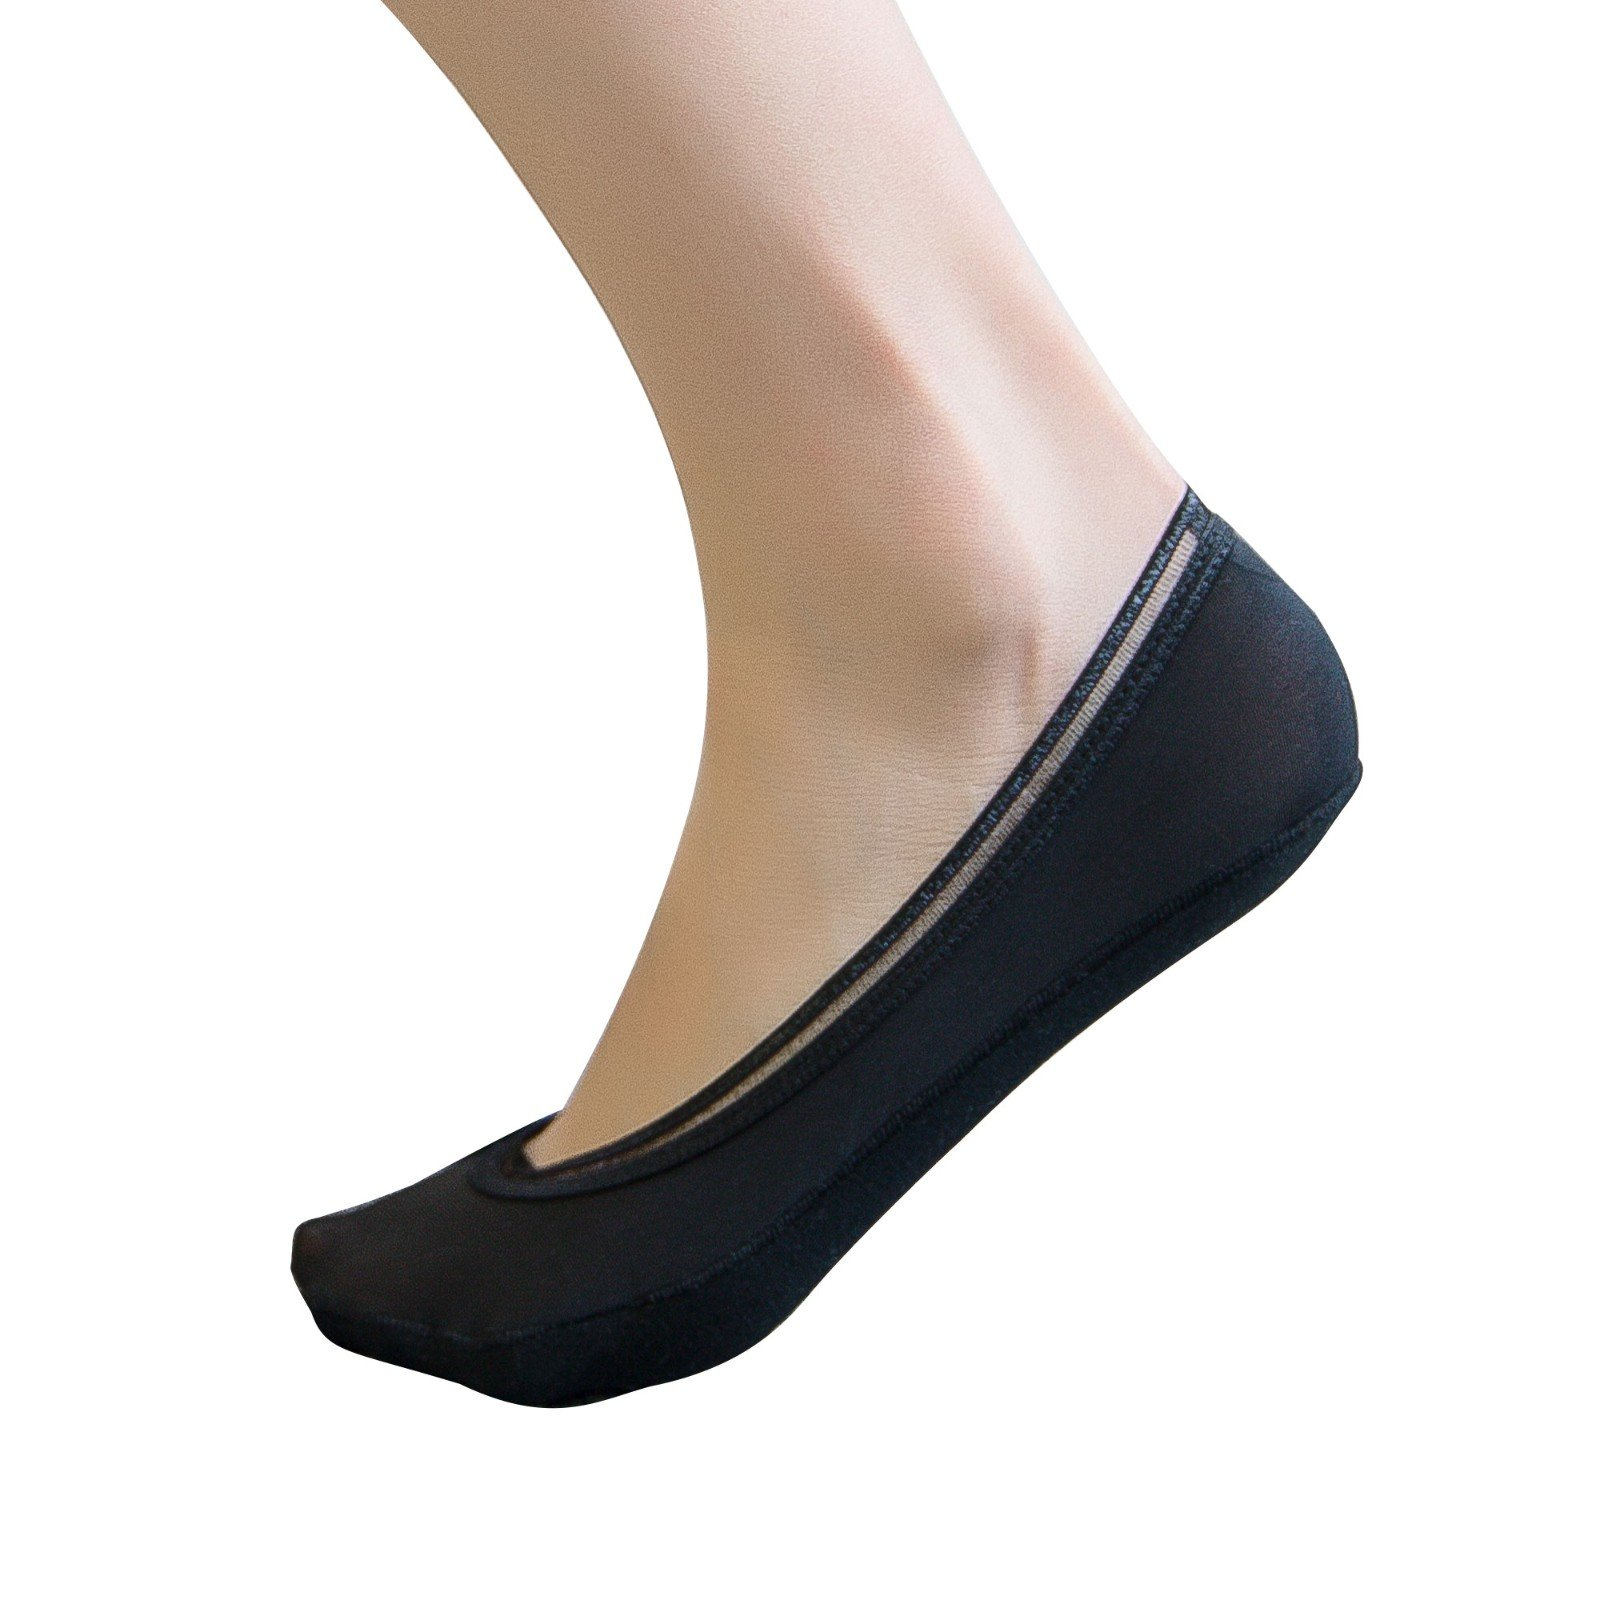 Beauty7 Women 5 Pairs Invisible No Show Thin Liner Socks Non Slip Silicone Grip Heel & Bottom Cotton Low Cut Boat Line Black